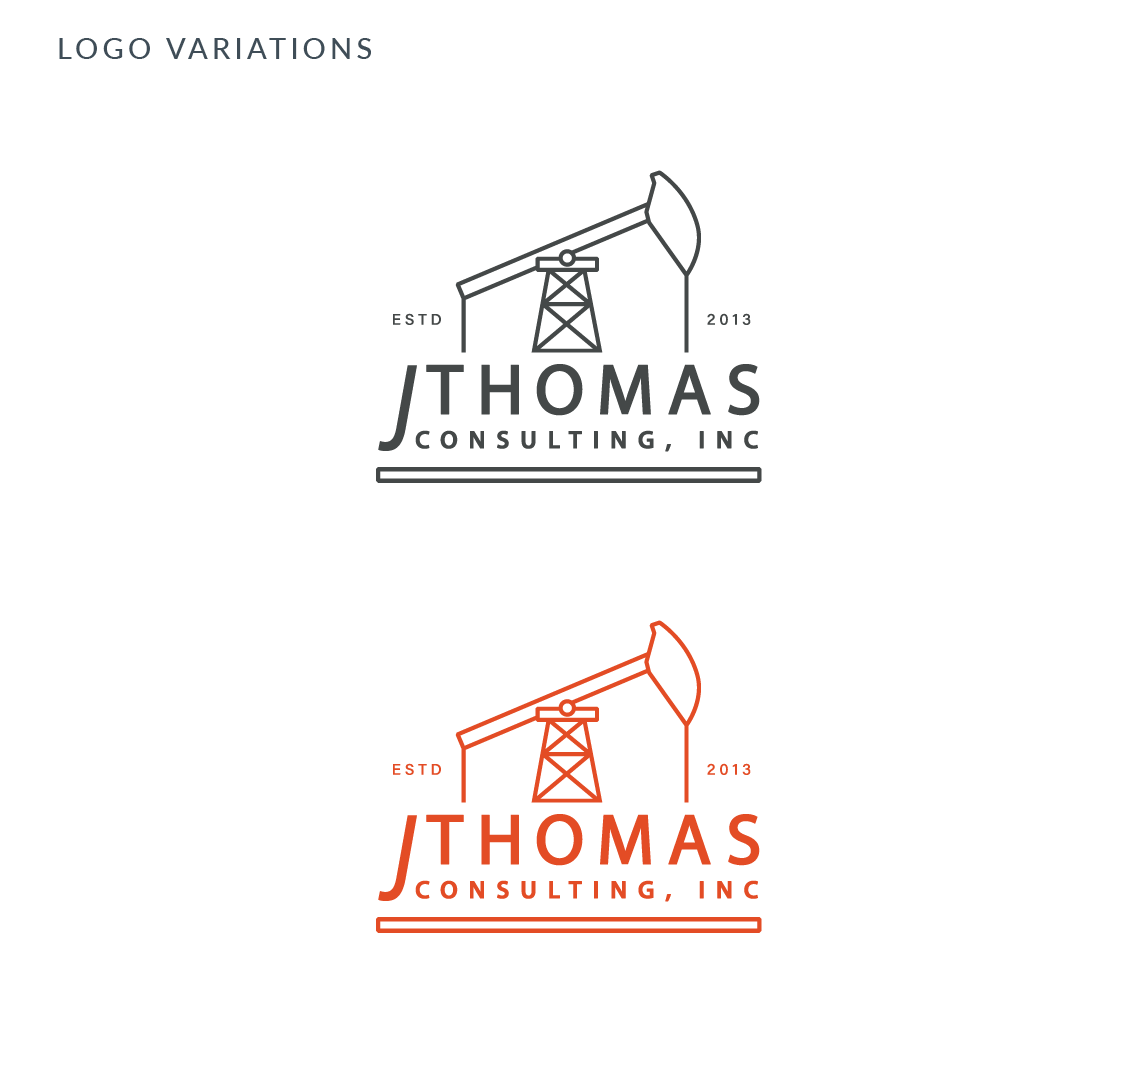 j thomas consulting-62.png